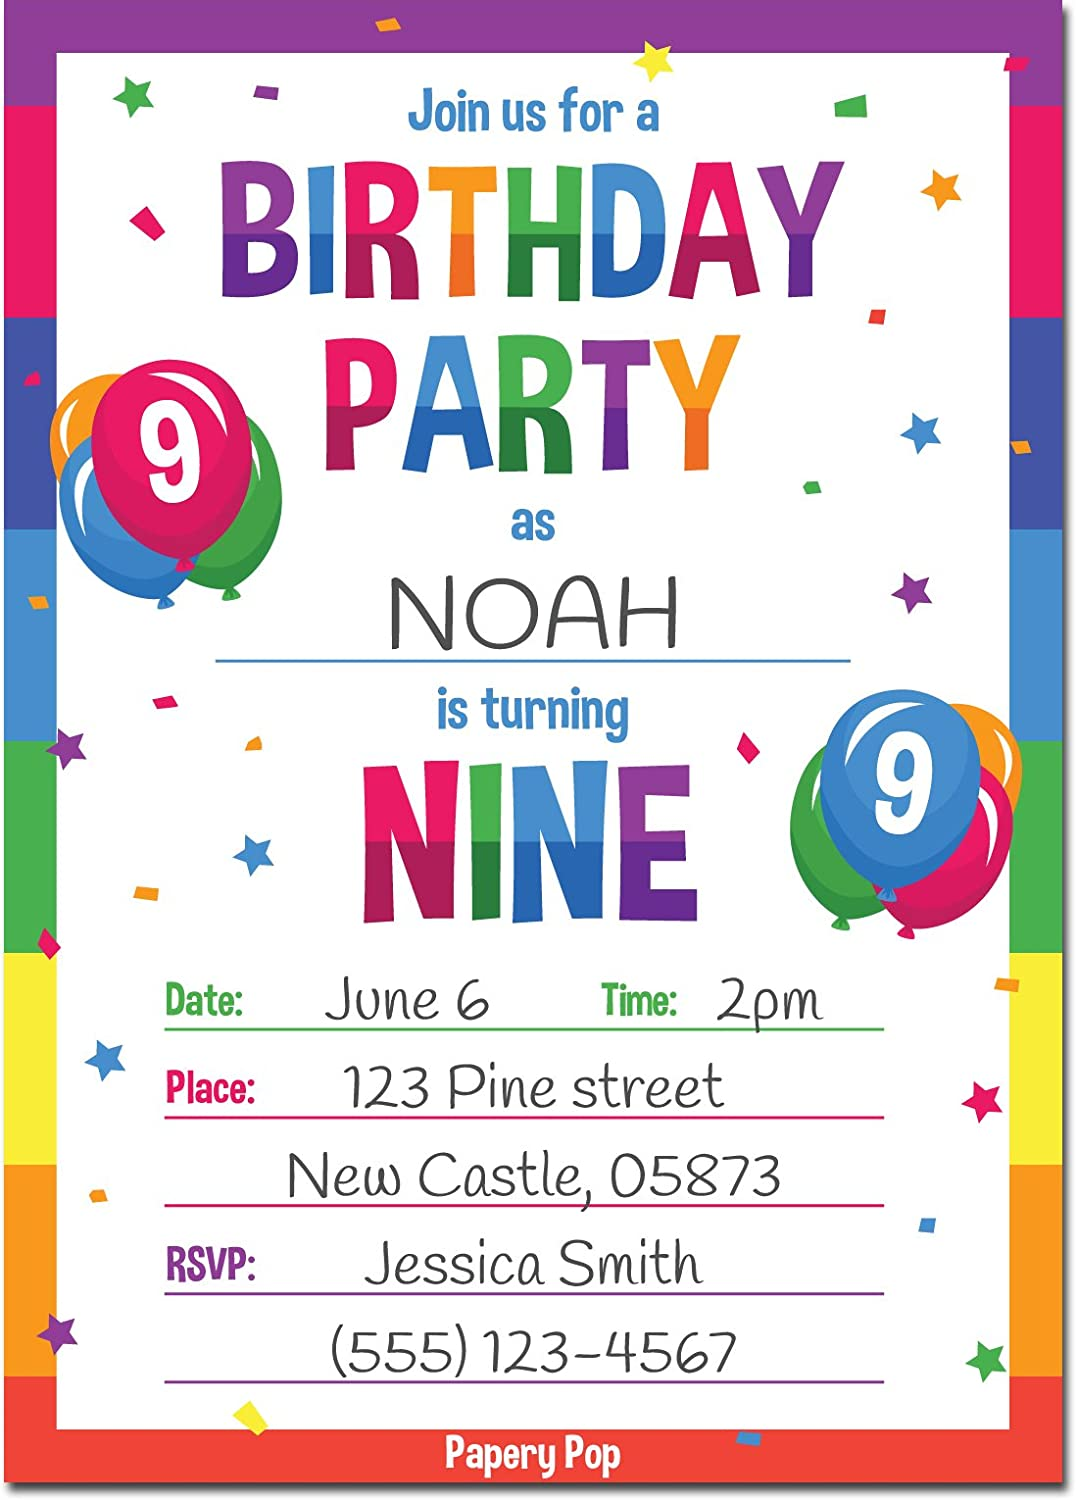 Papery Pop 9th Birthday Party Invitations With Envelopes 15 Count